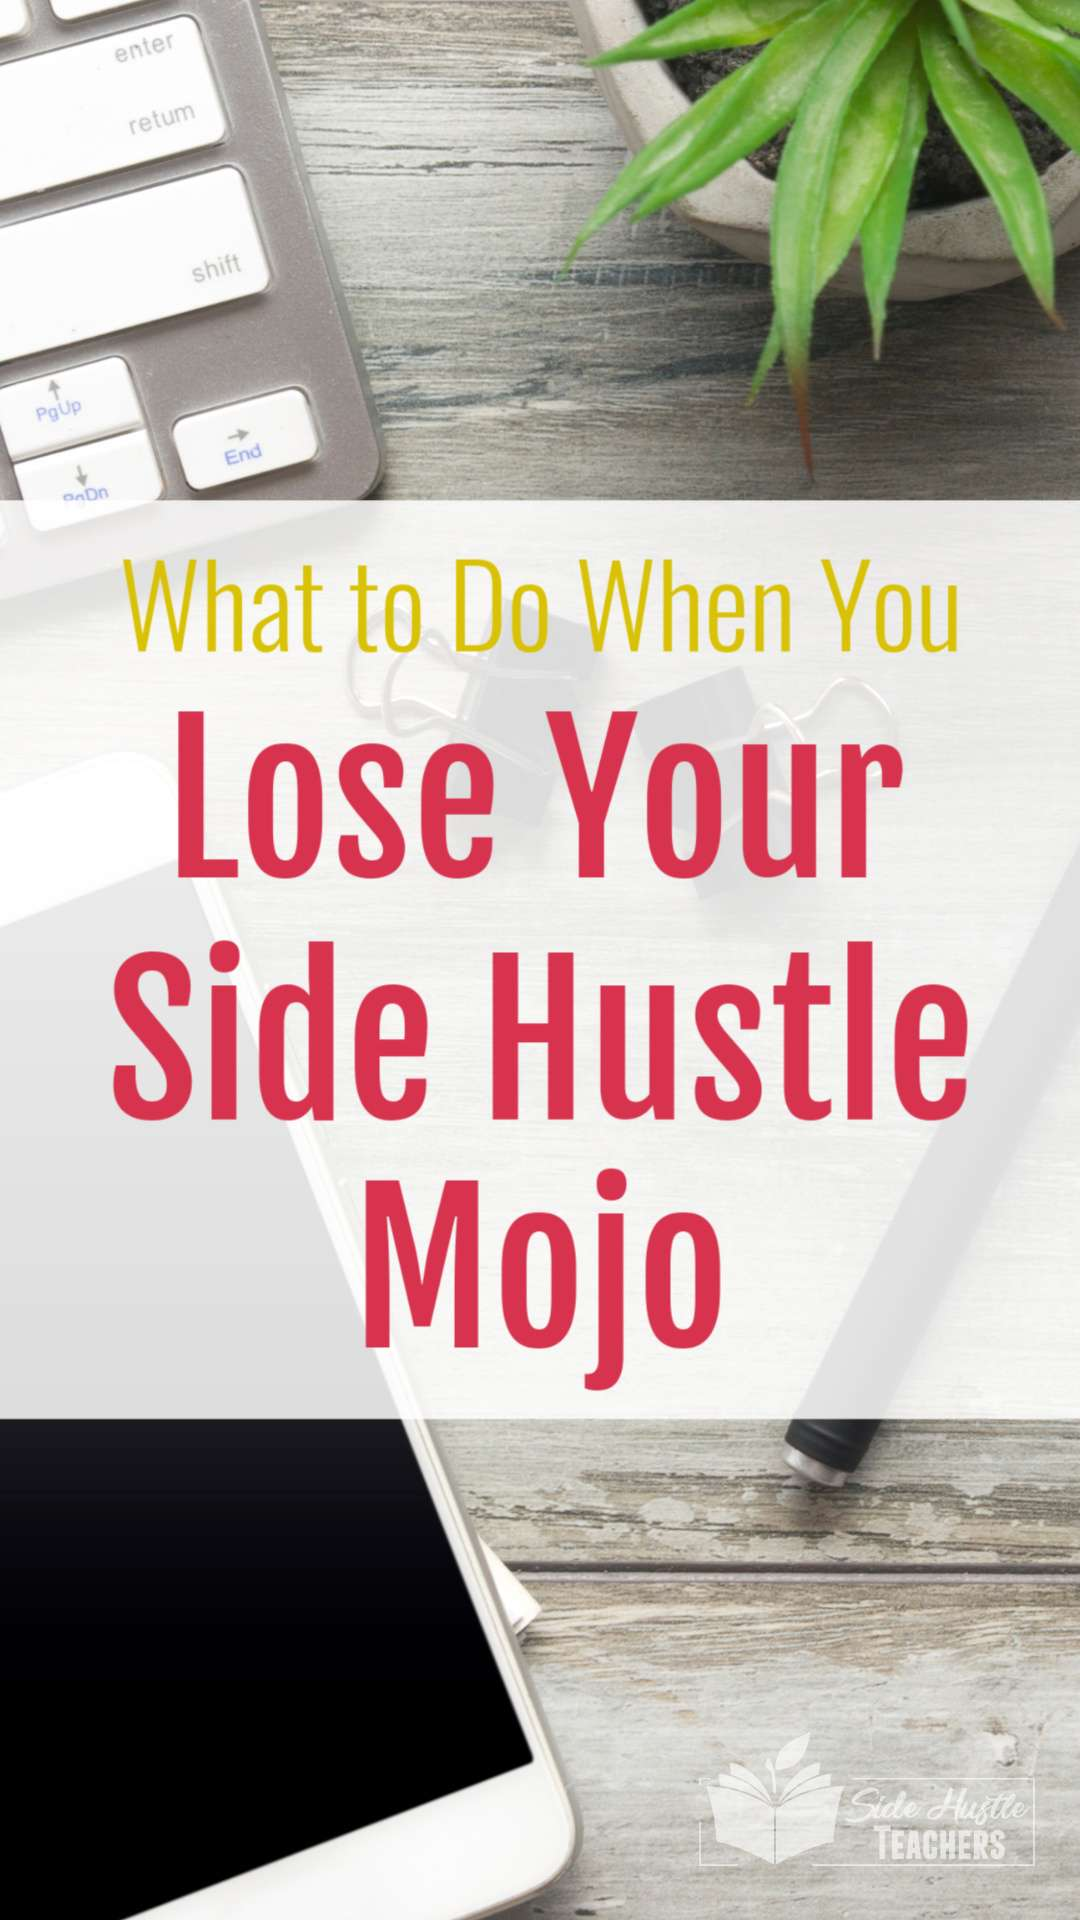 What to Do When You Lose Your Side Hustle Mojo